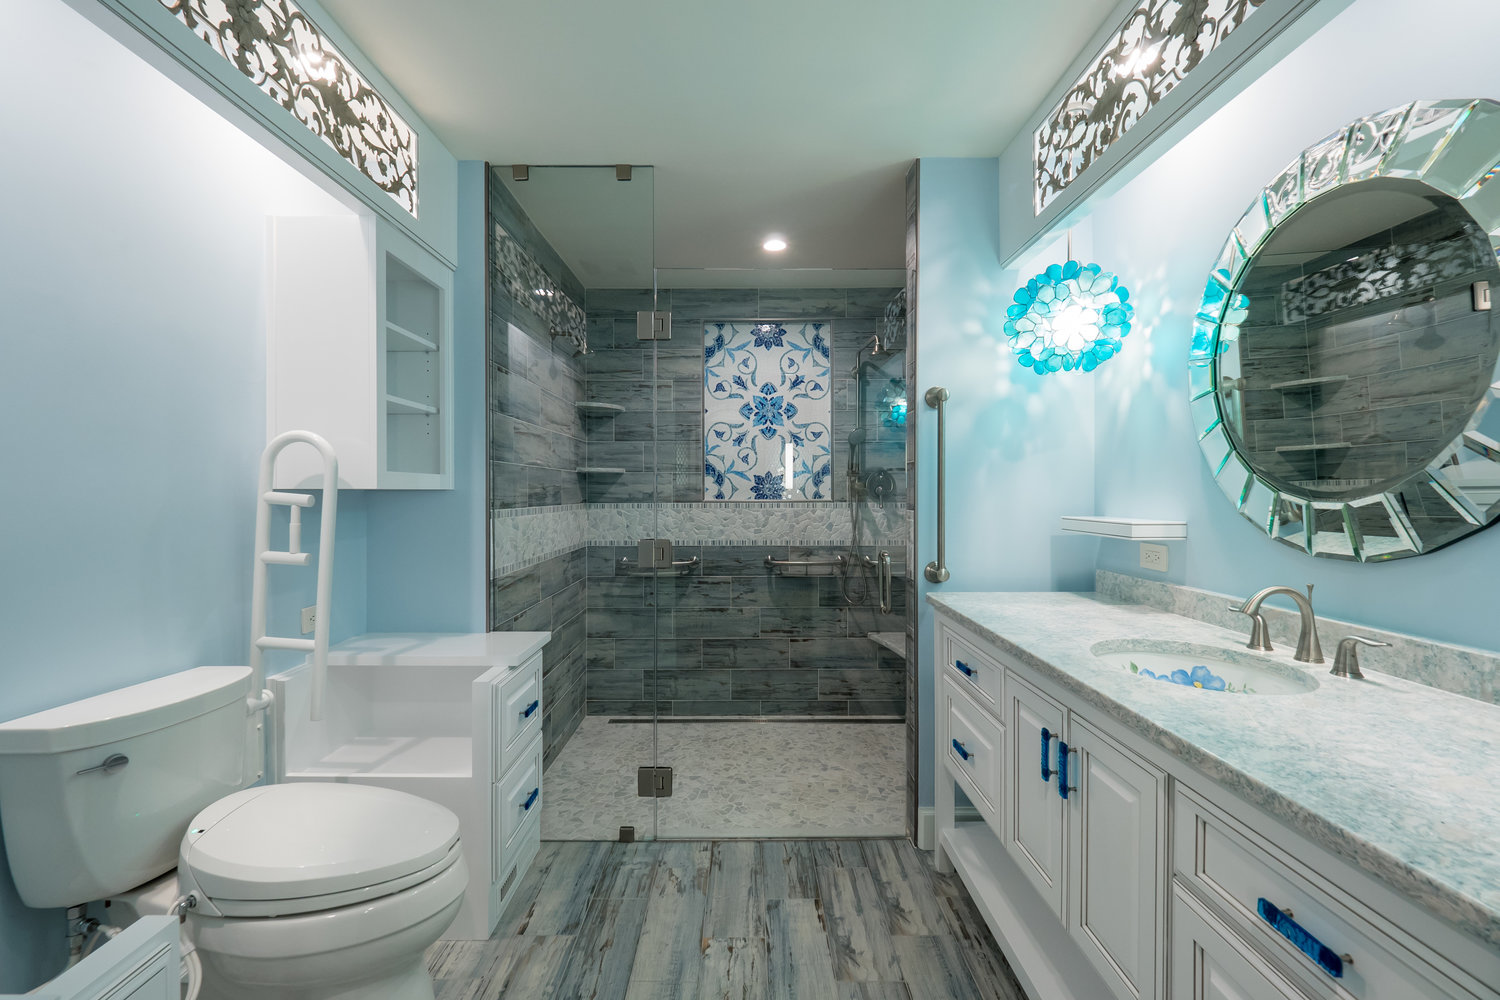 Artful lighting + Mosiac Tile Bathroom -